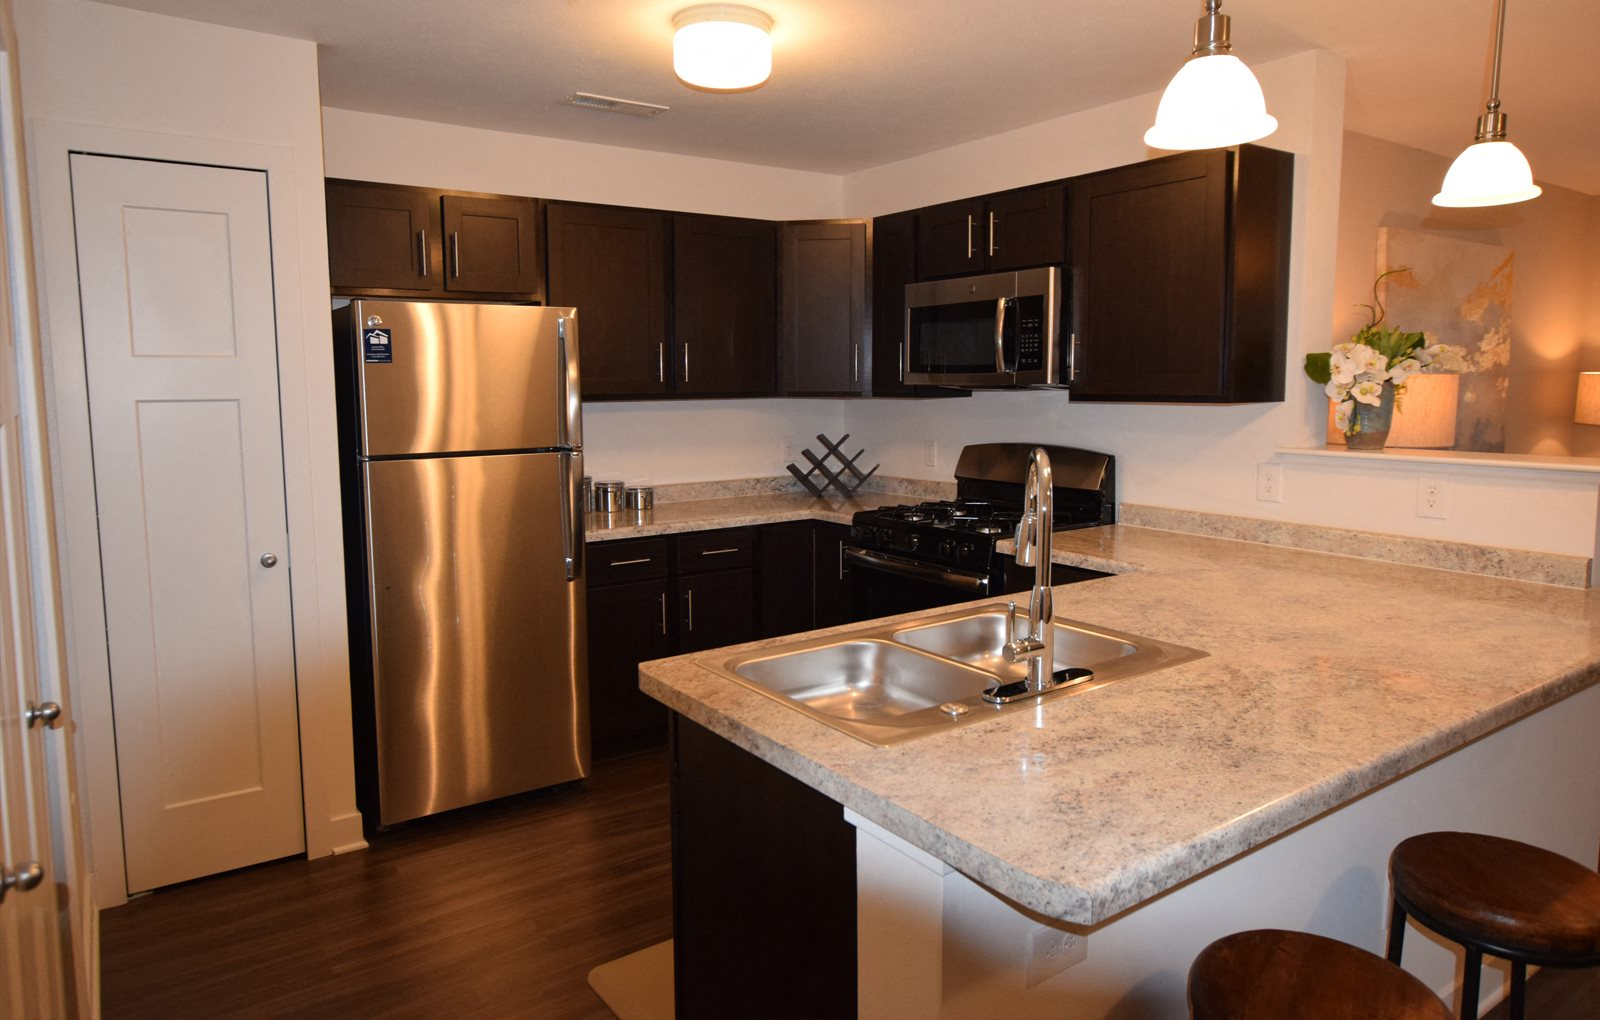 Chef Inspired Kitchen Design at Copper Creek Apartment Homes, Maize